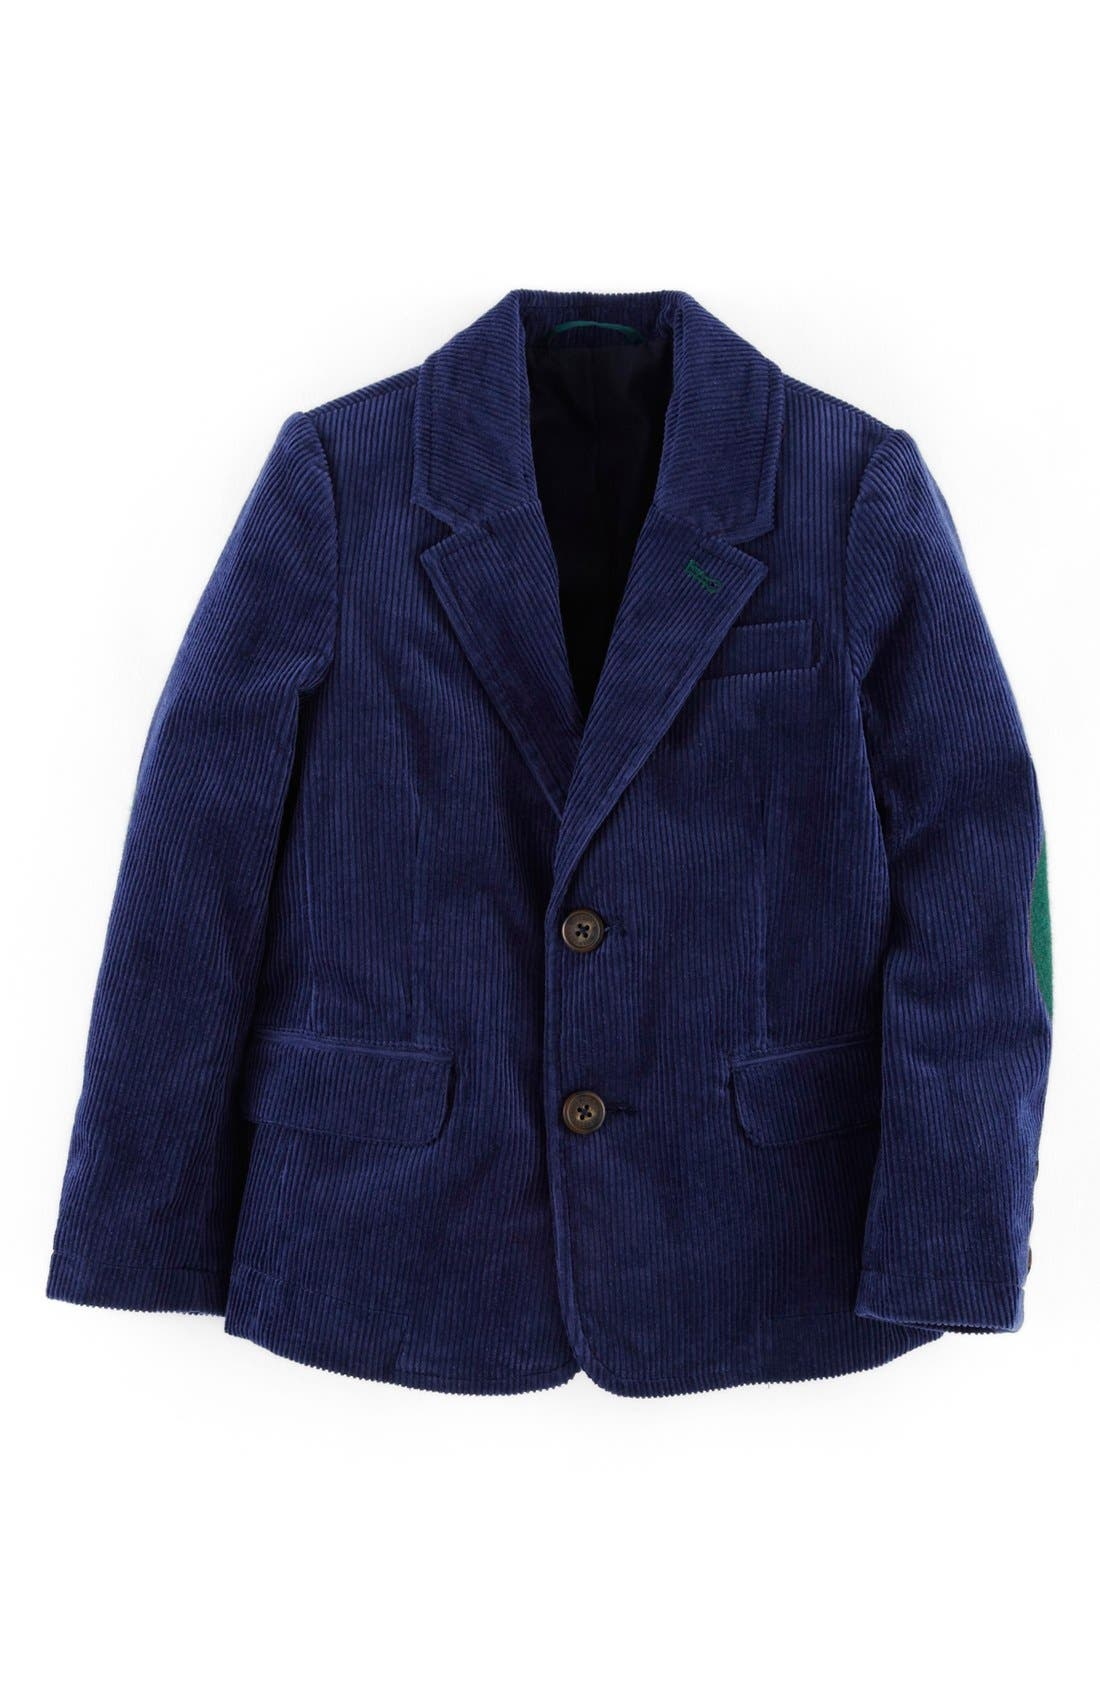 Main Image - Mini Boden Corduroy Blazer (Little Boys & Big Boys)